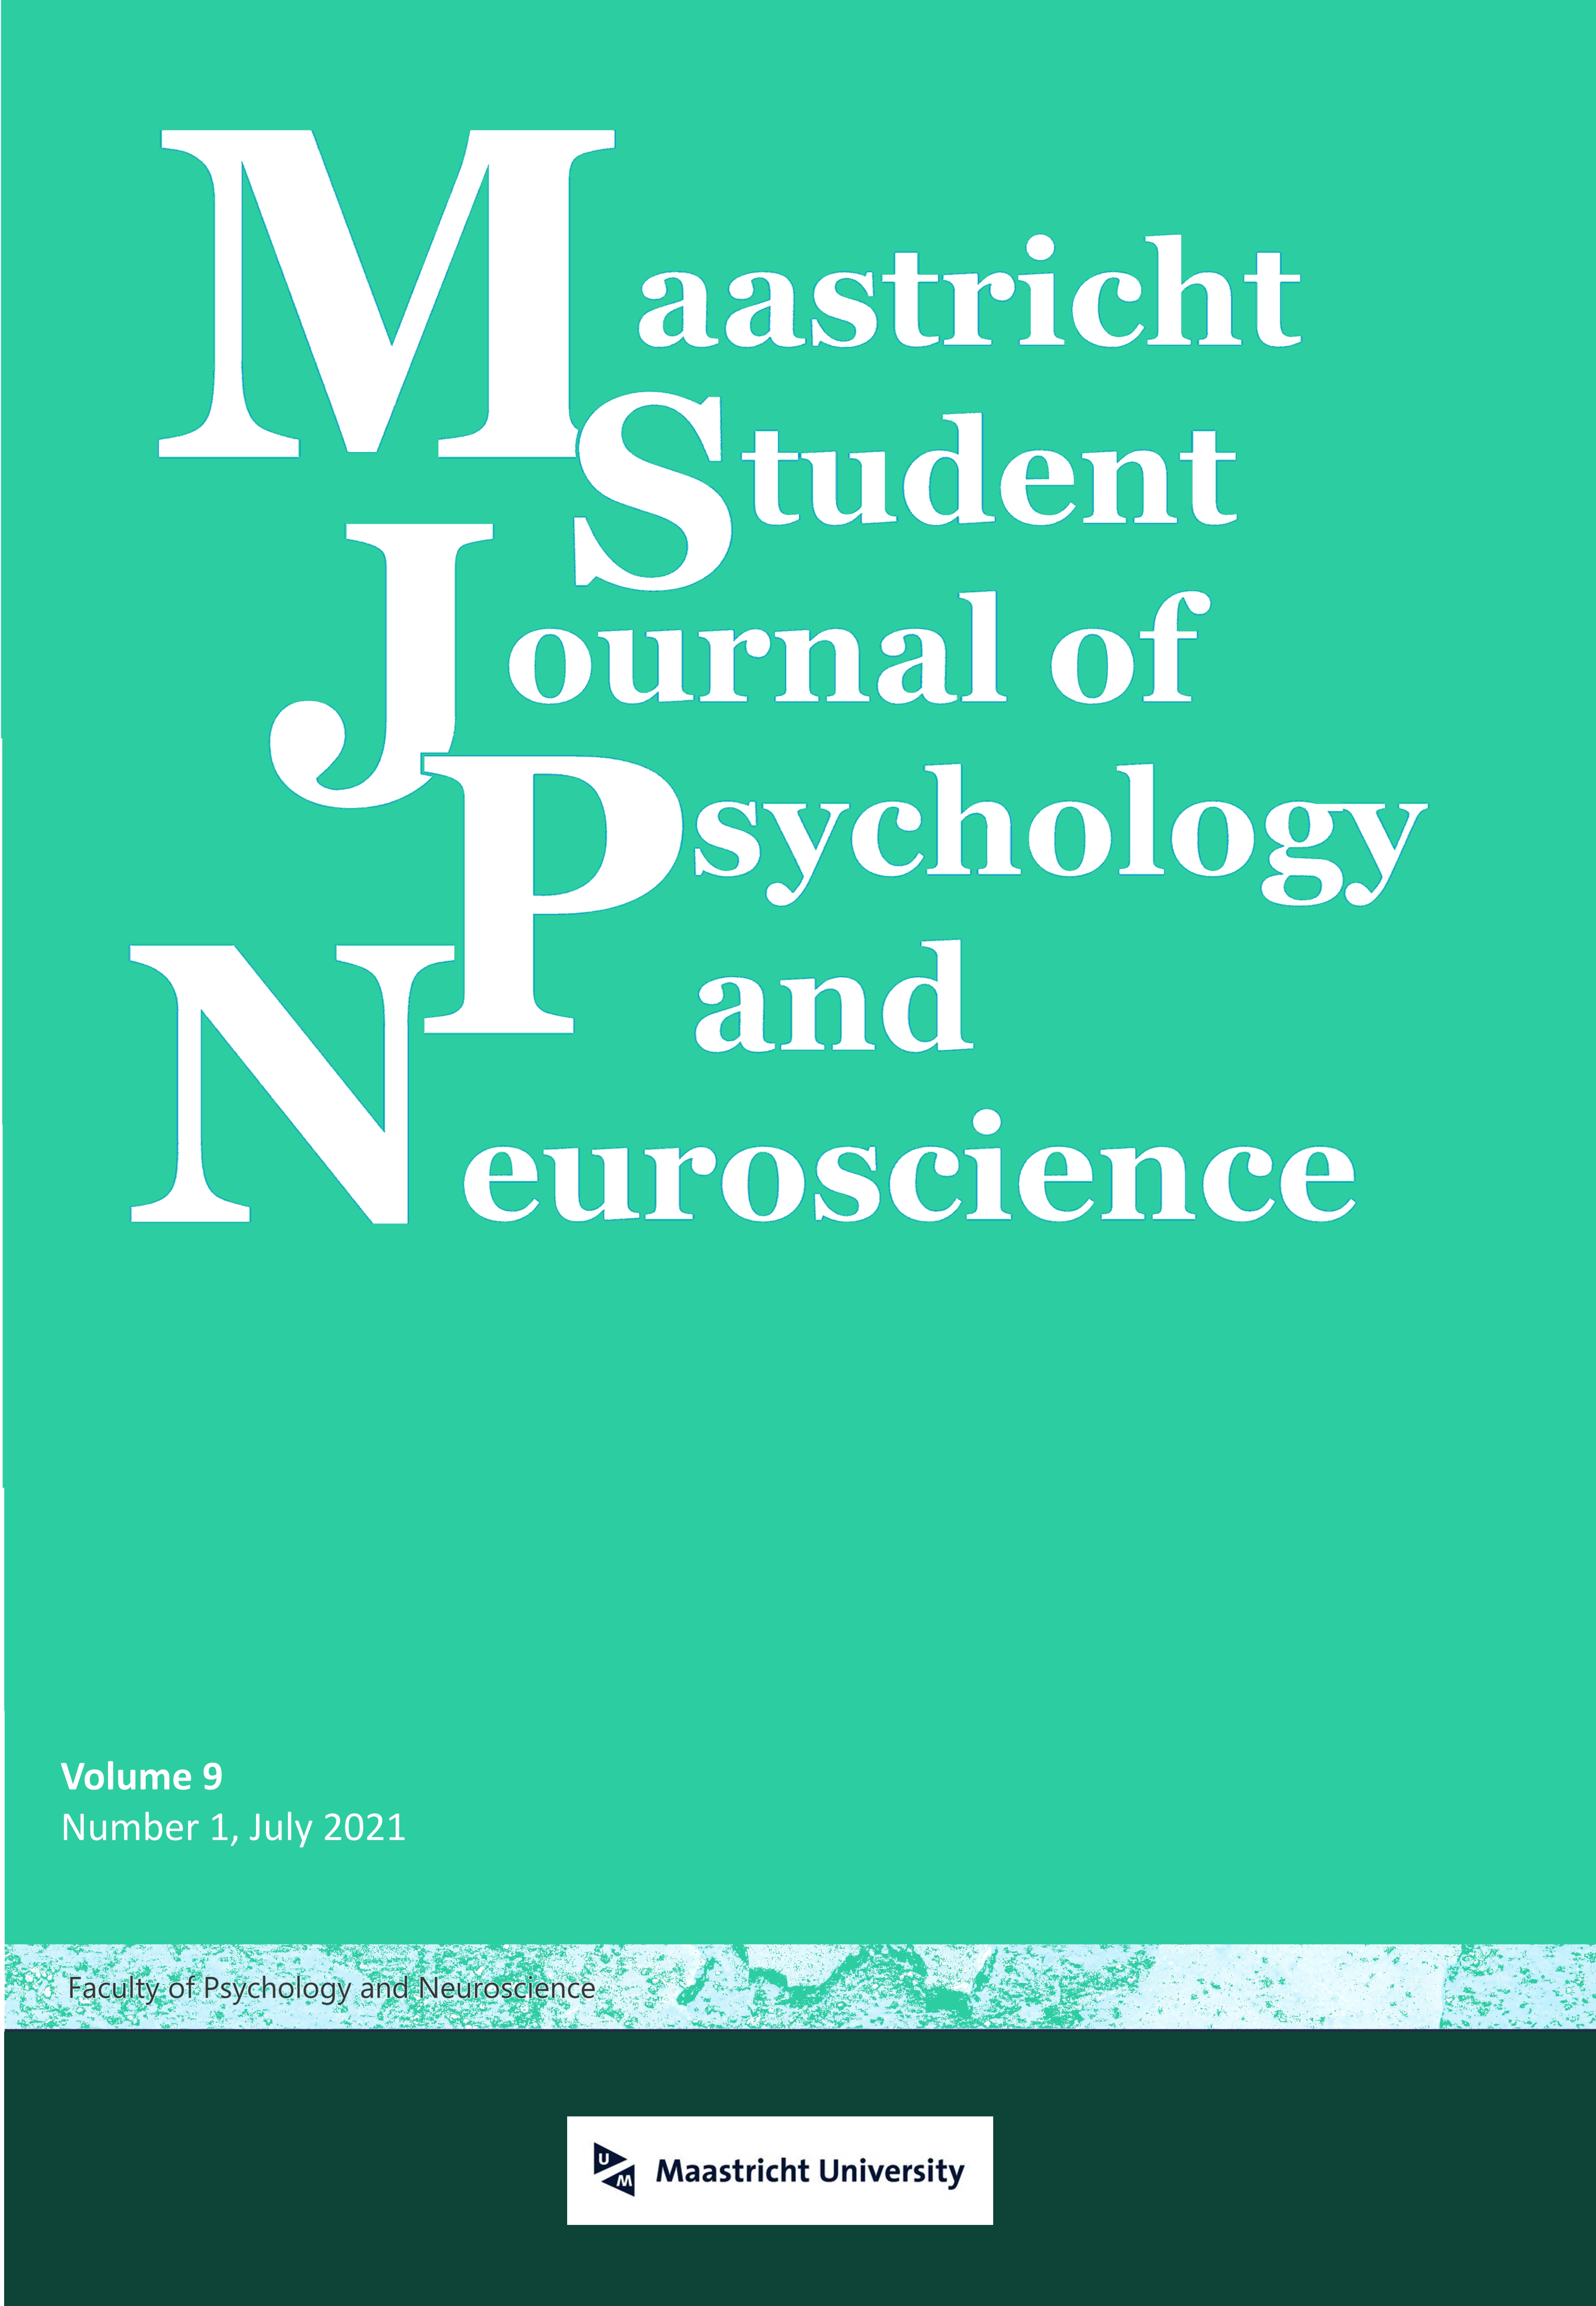 View Vol. 9 No. 1 (2021): Maastricht Student Journal of Psychology and Neuroscience